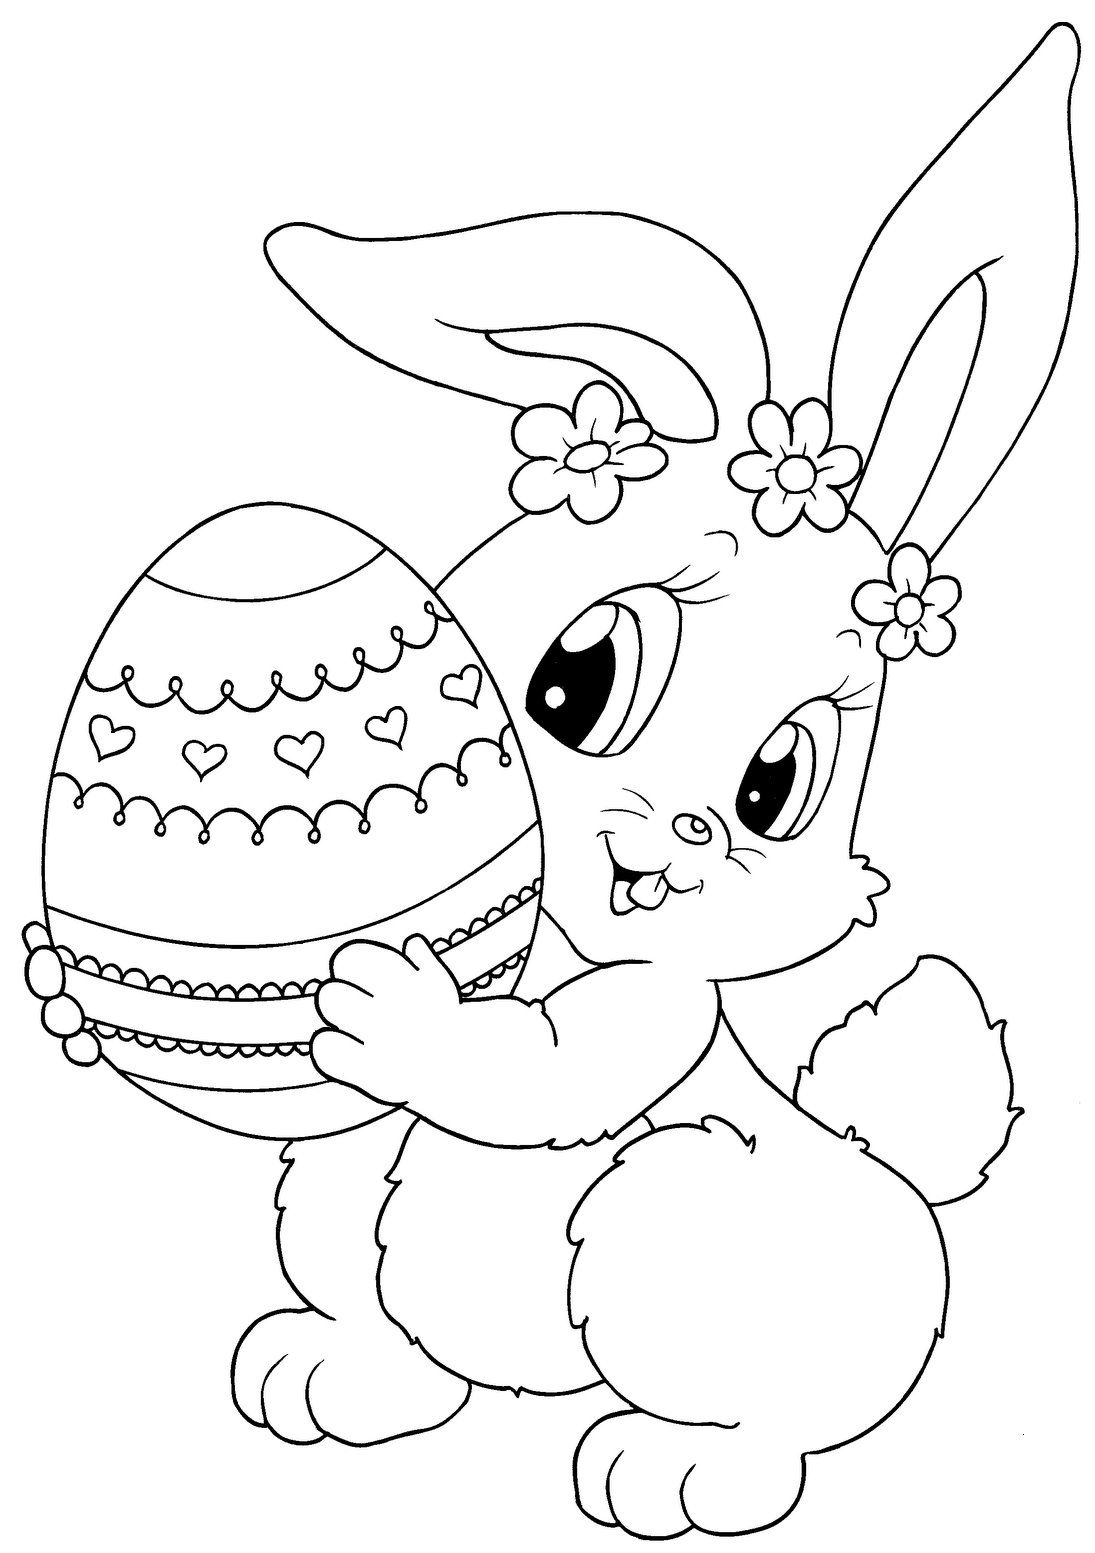 free easter coloring pages top 15 free printable easter bunny coloring pages online easter free coloring pages